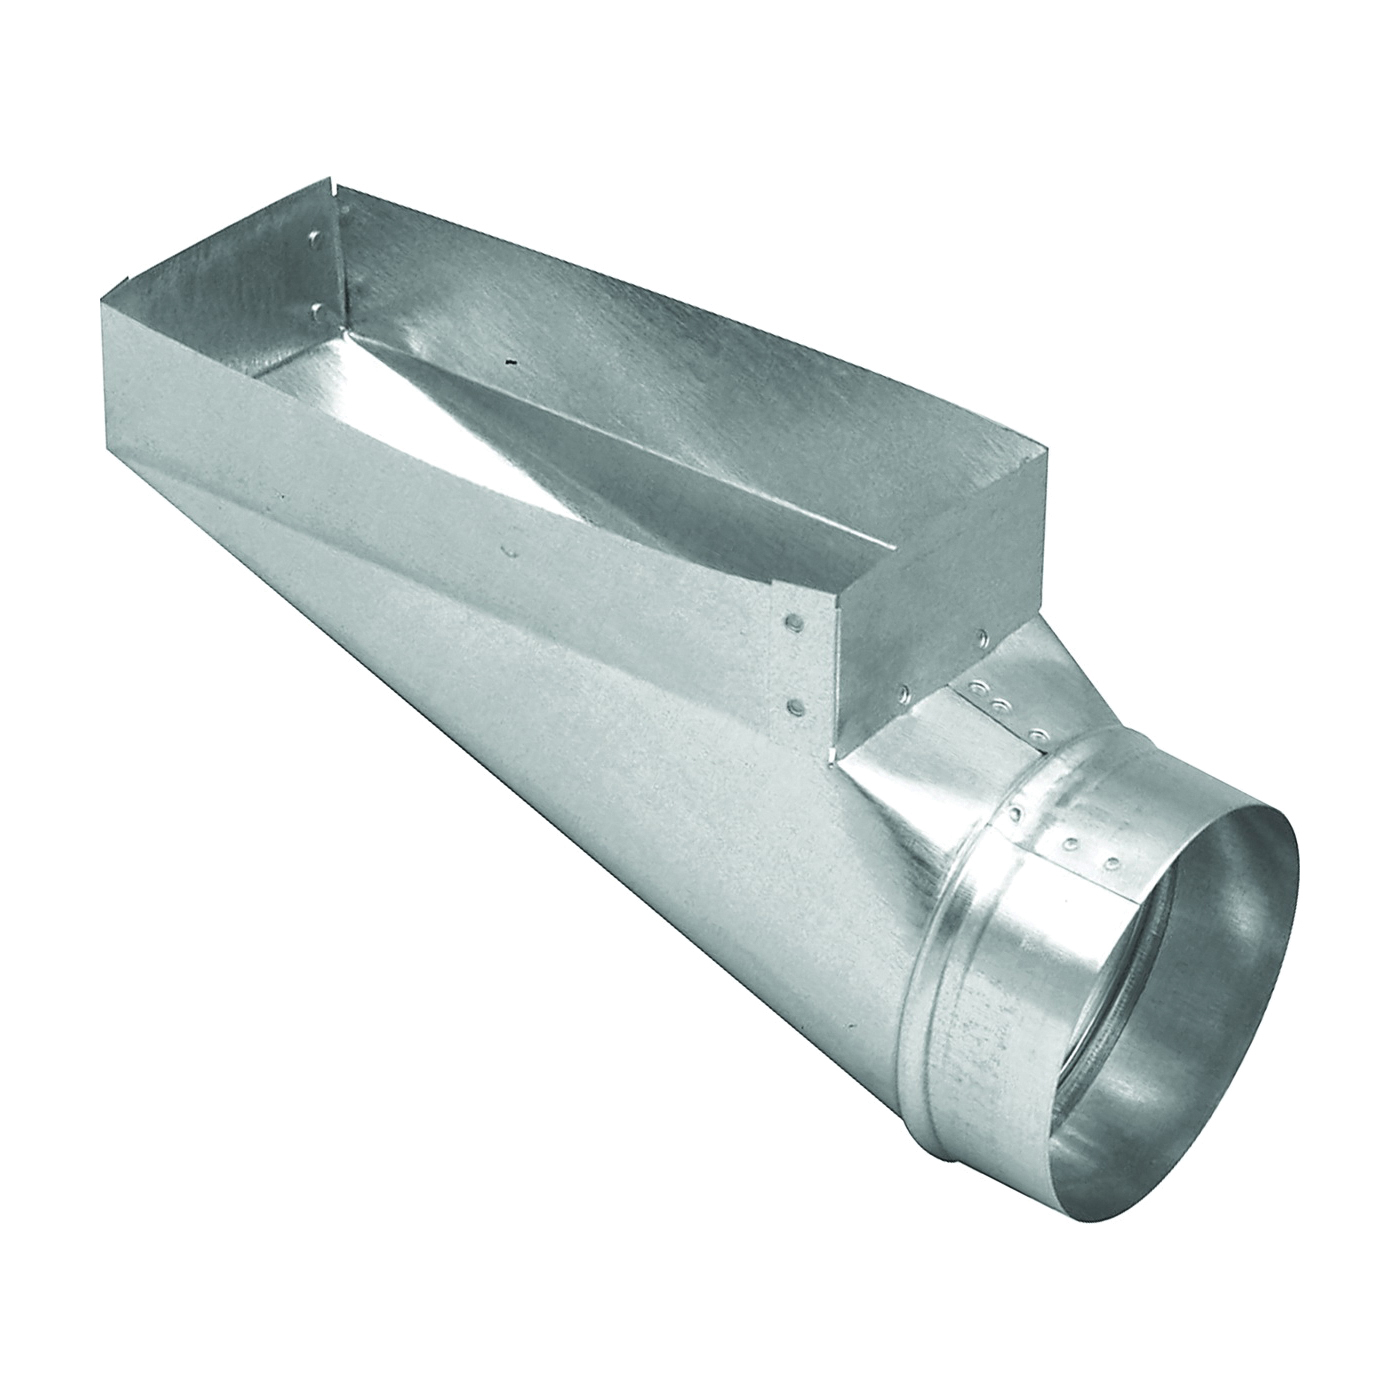 Picture of Imperial GV0667 Wall Register Boot, 4 in L, 10 in W, 6 in H, Galvanized